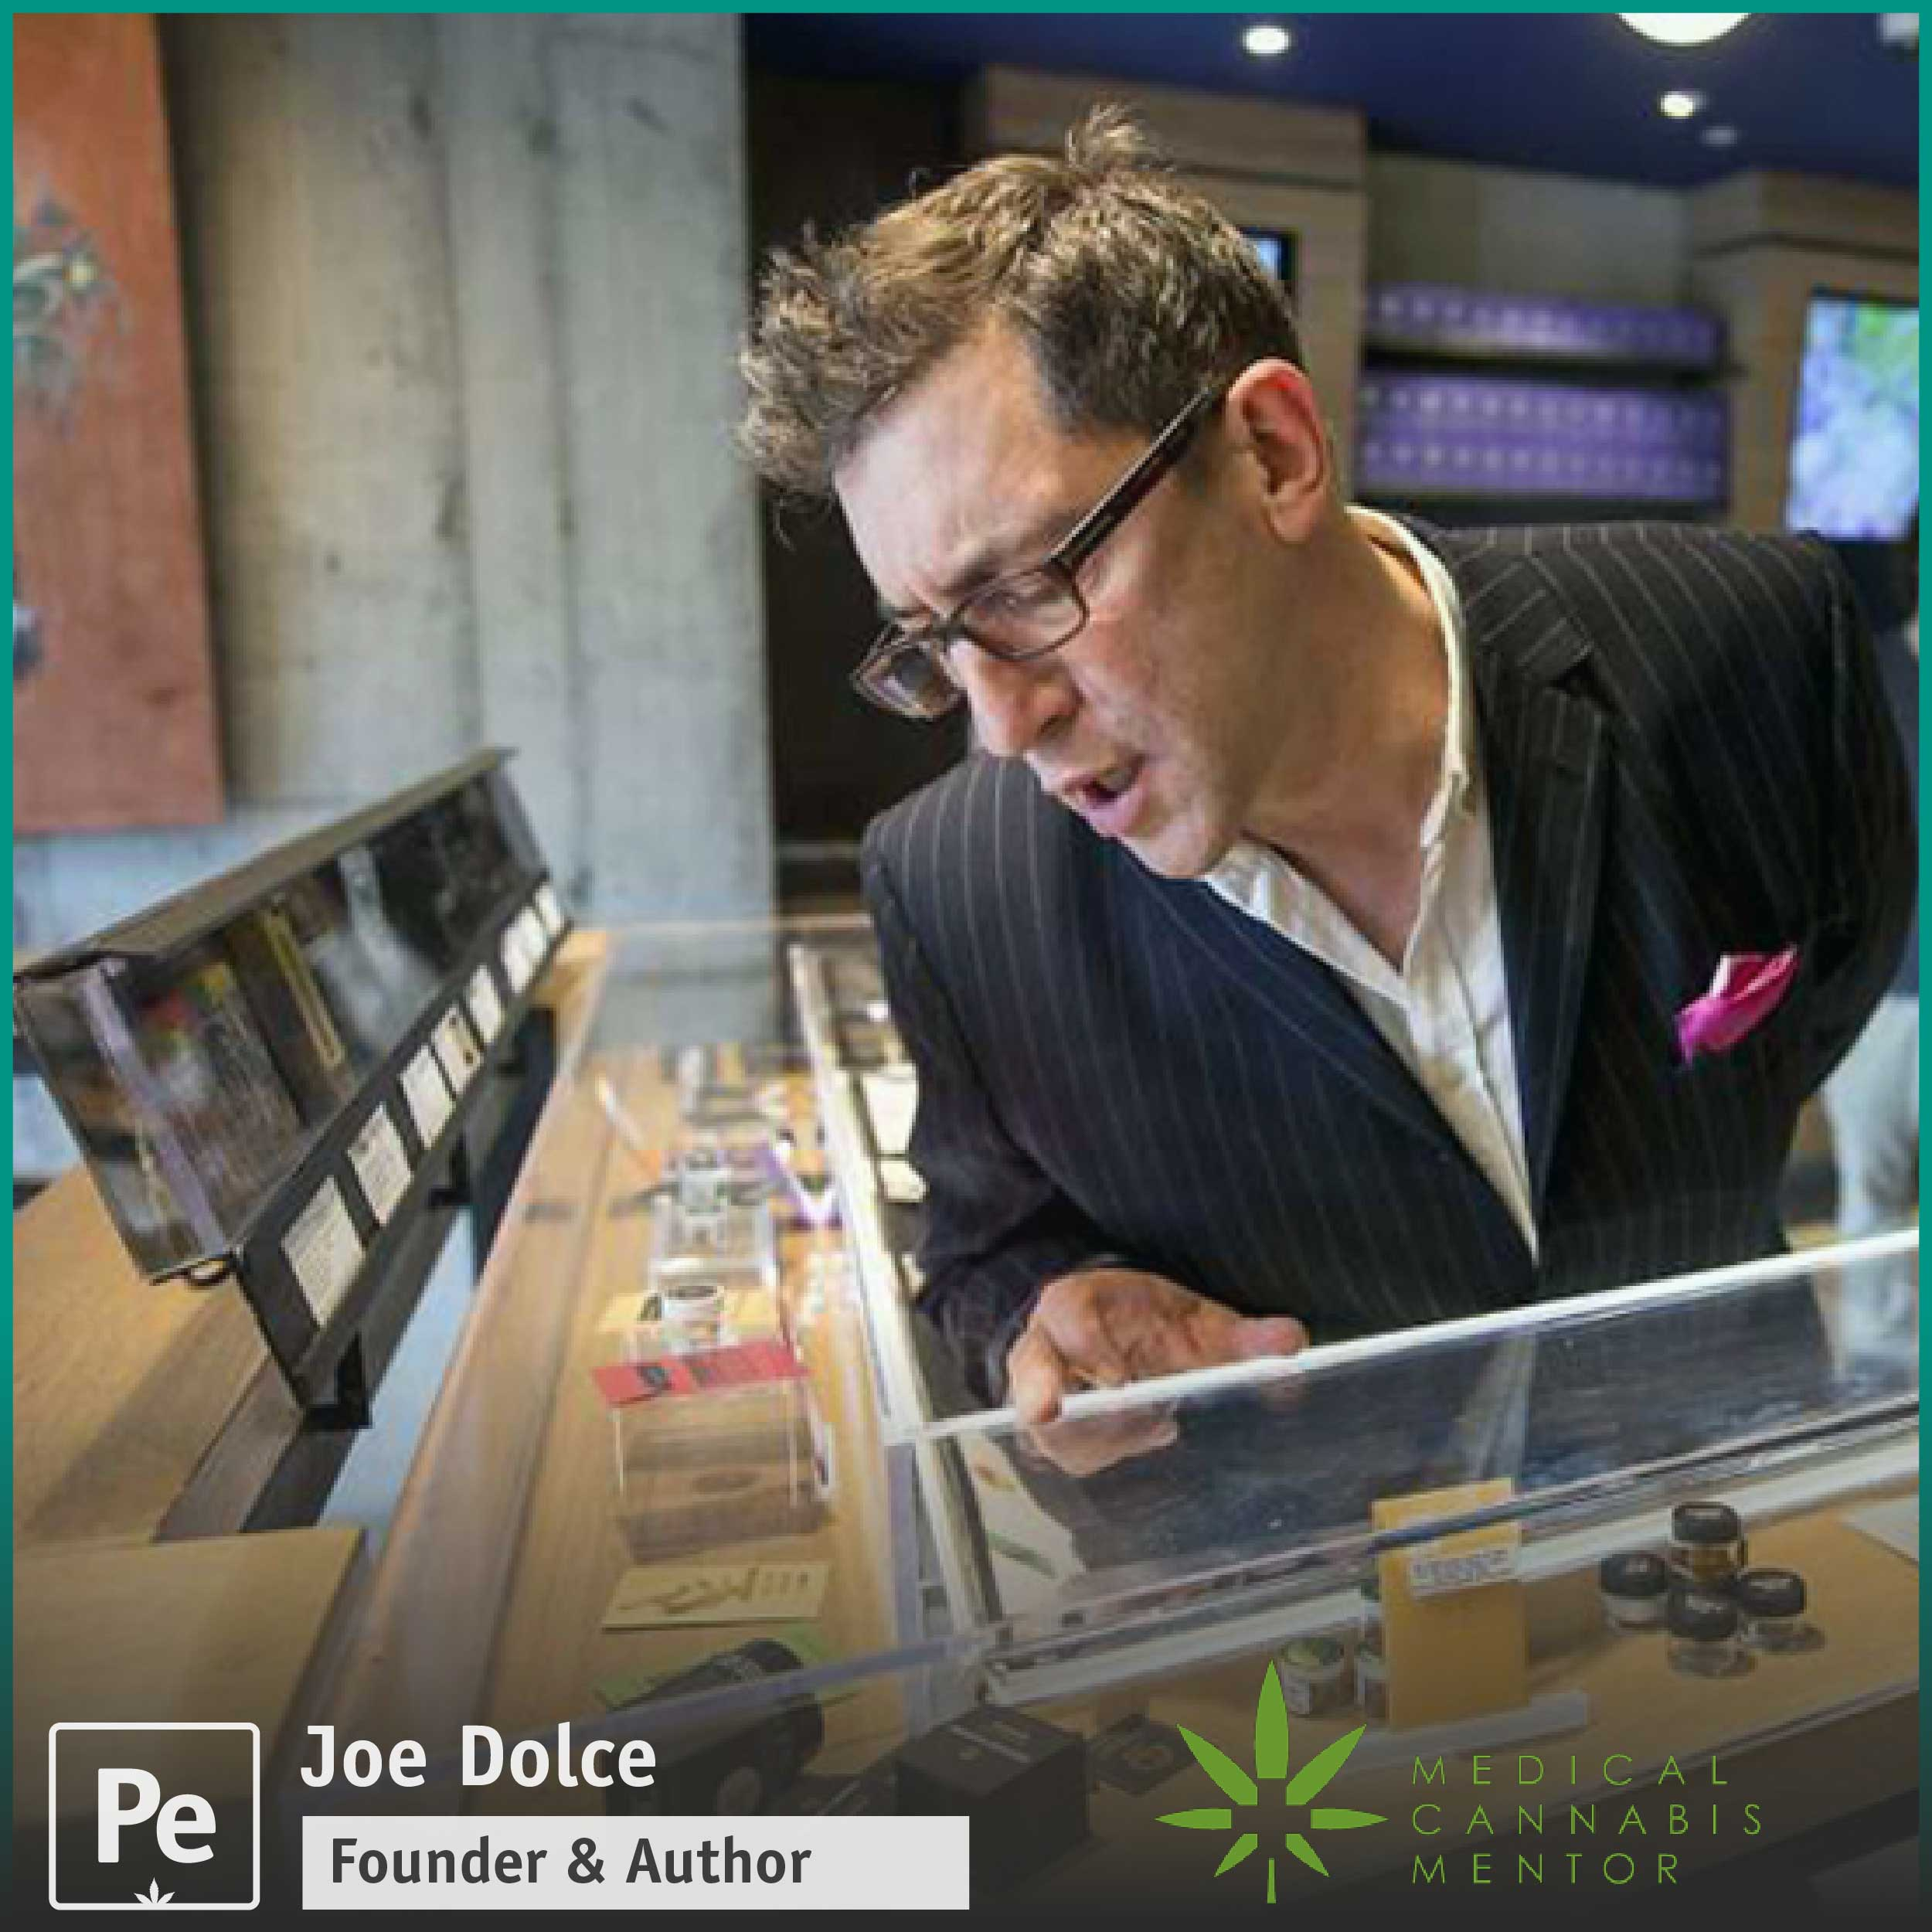 Joe Dolce, author of the book Brave New Weed, a look at the evolving cannabis and marijuana industry